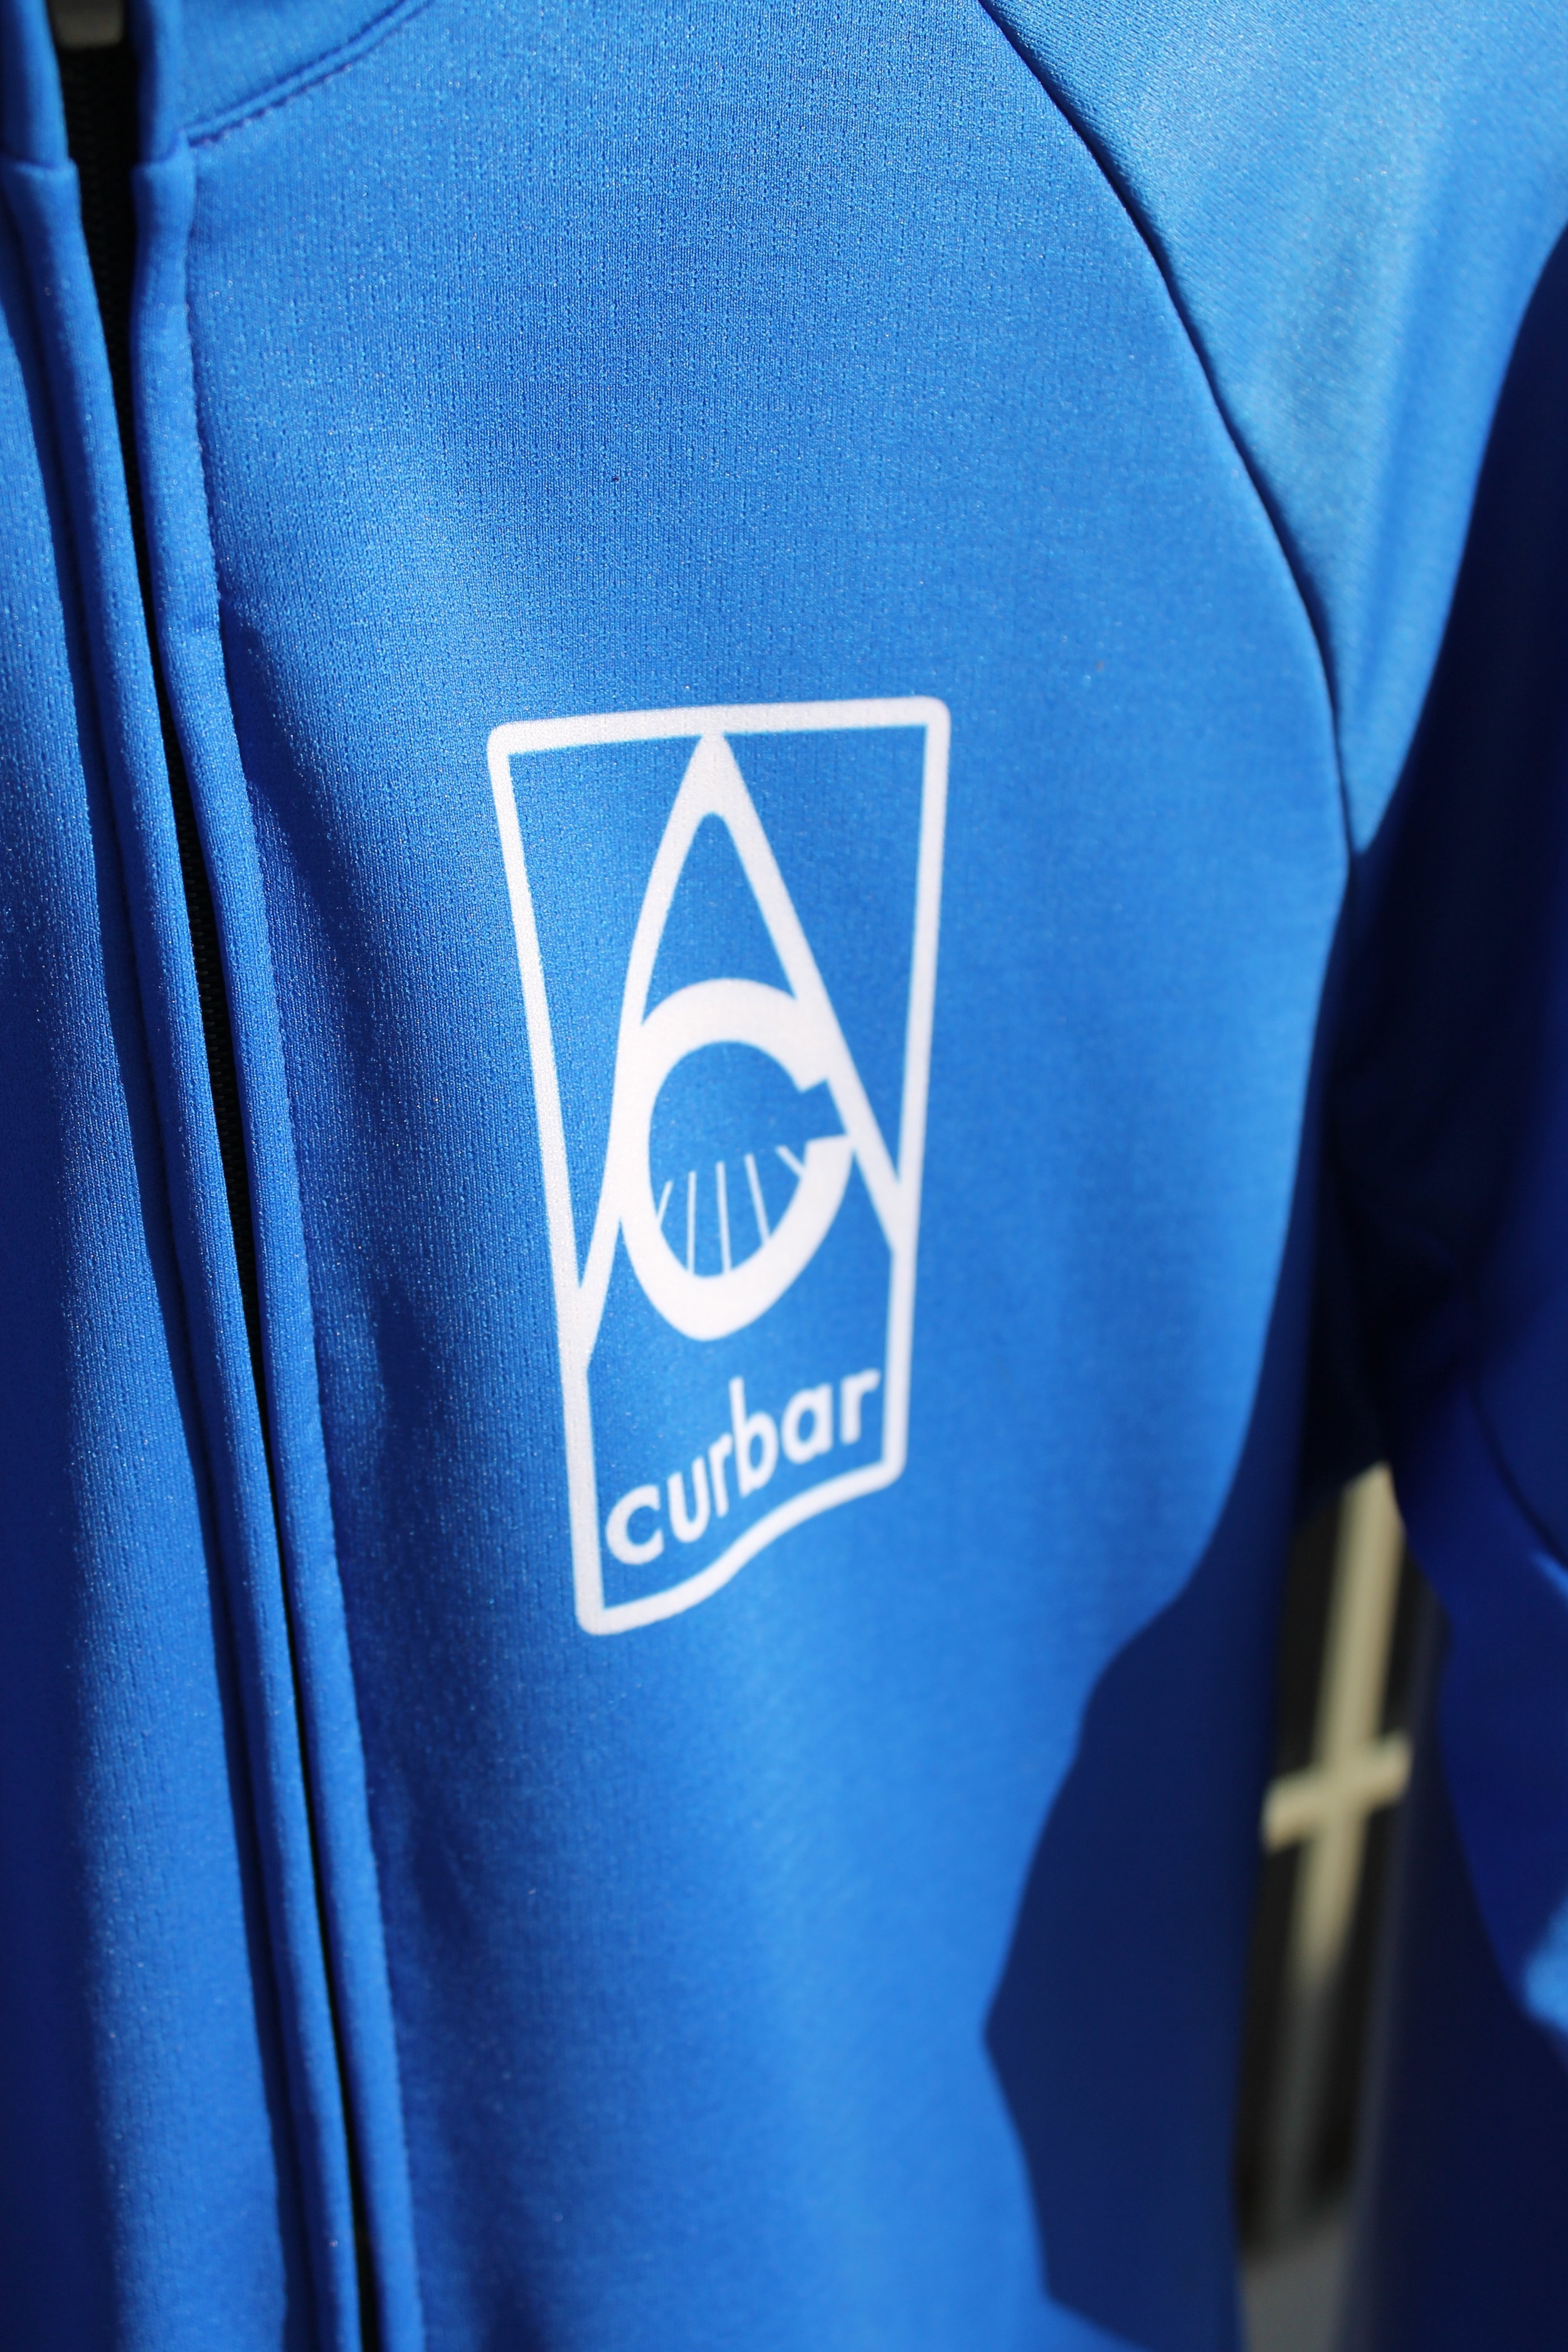 Curbar logo situated on the front left